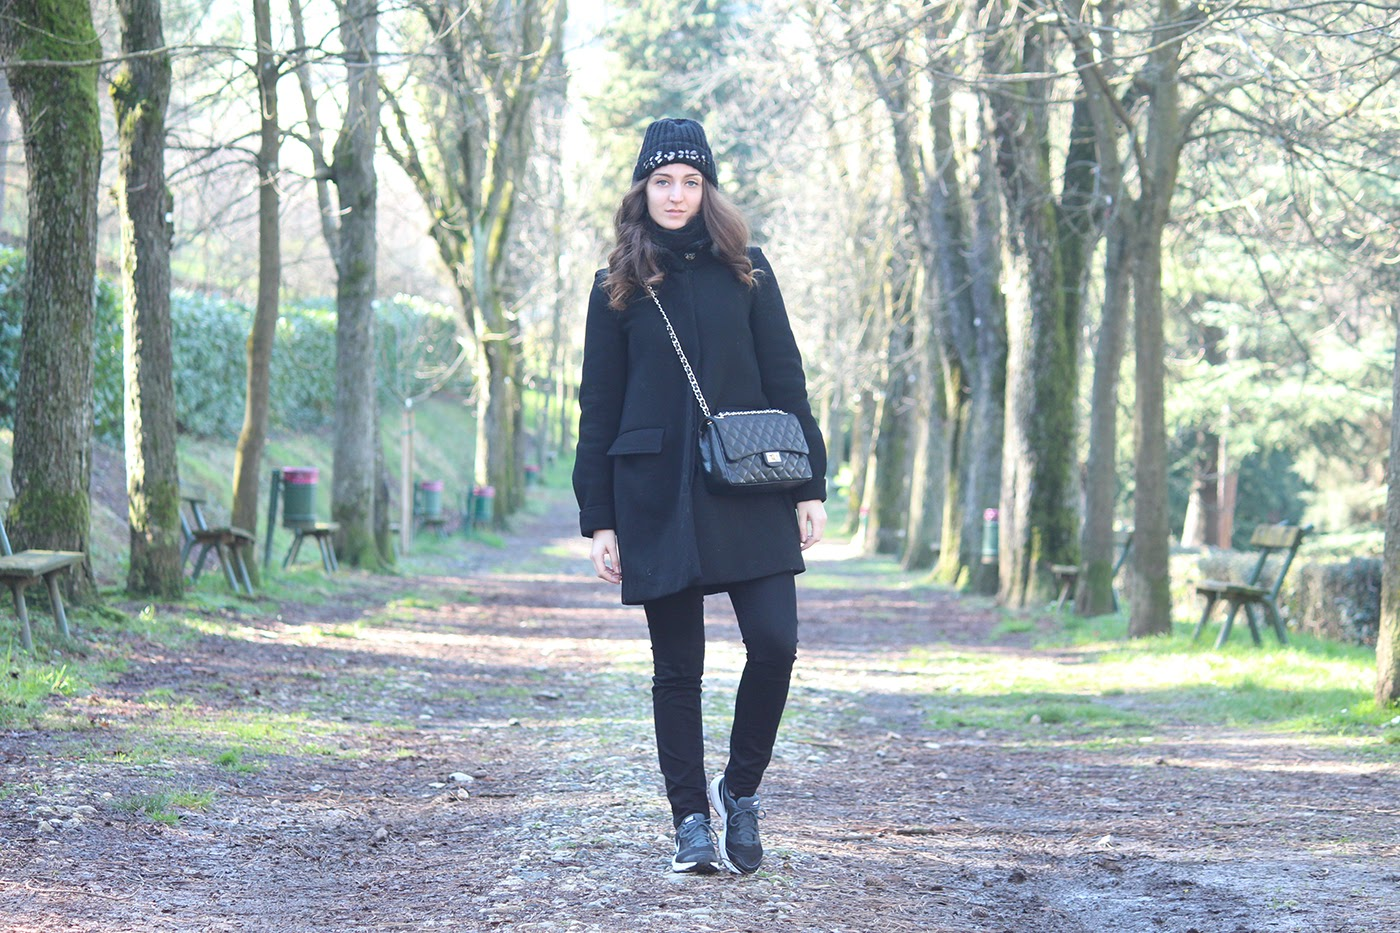 fashion blogger italy italia outfit ootd black look style vogue nike runners shoes scarpe zara coat cappotto bijou brigitte berretto lana wool hat black nero